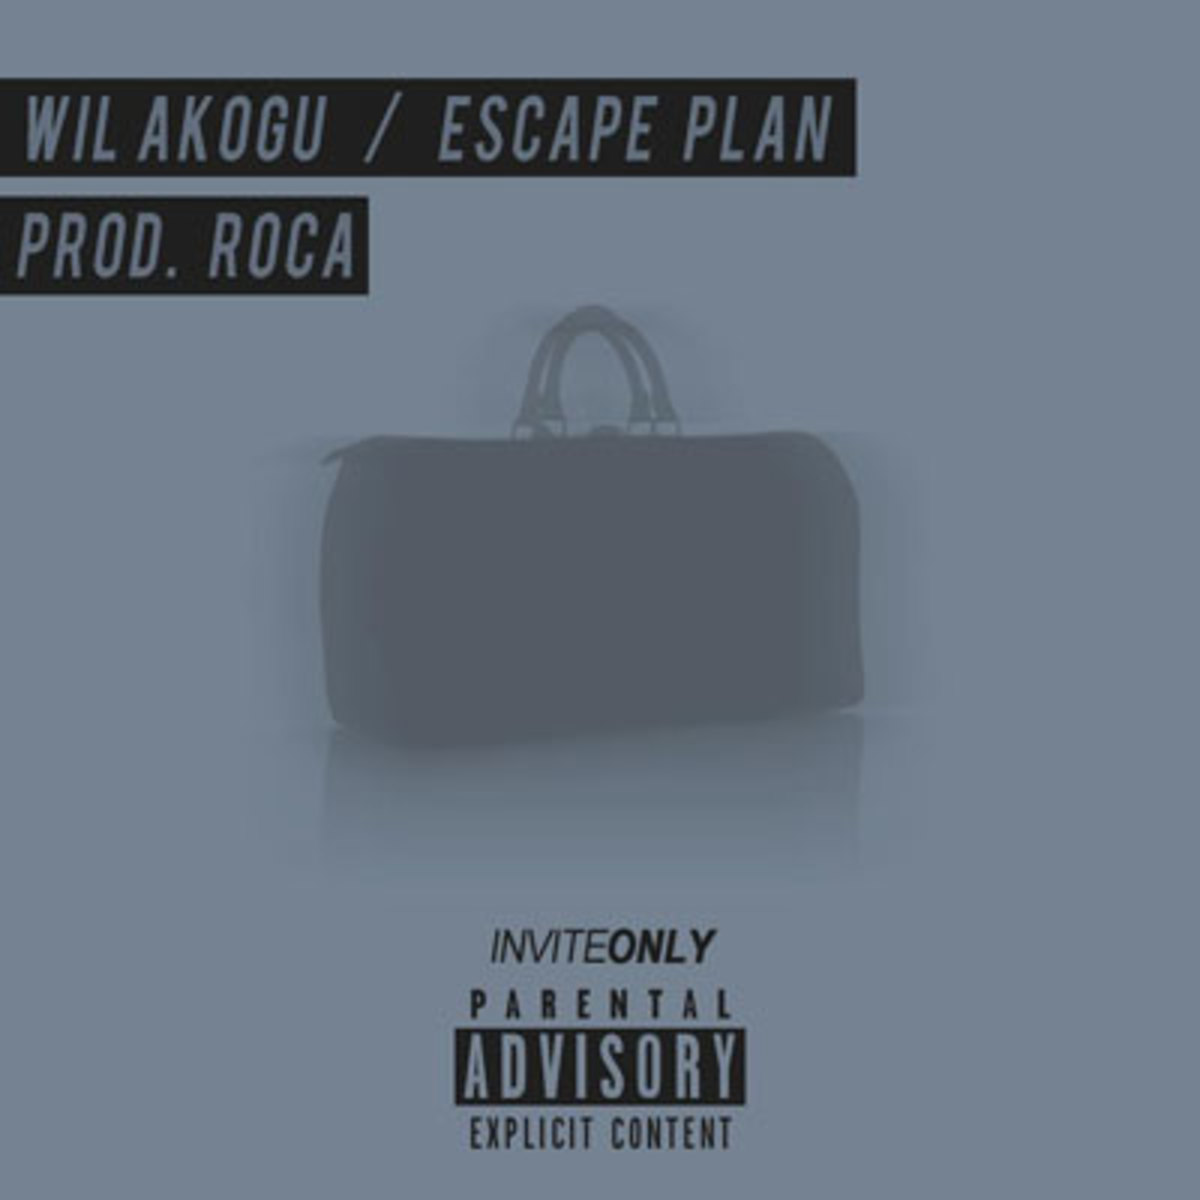 willakogu-escapeplan.jpg